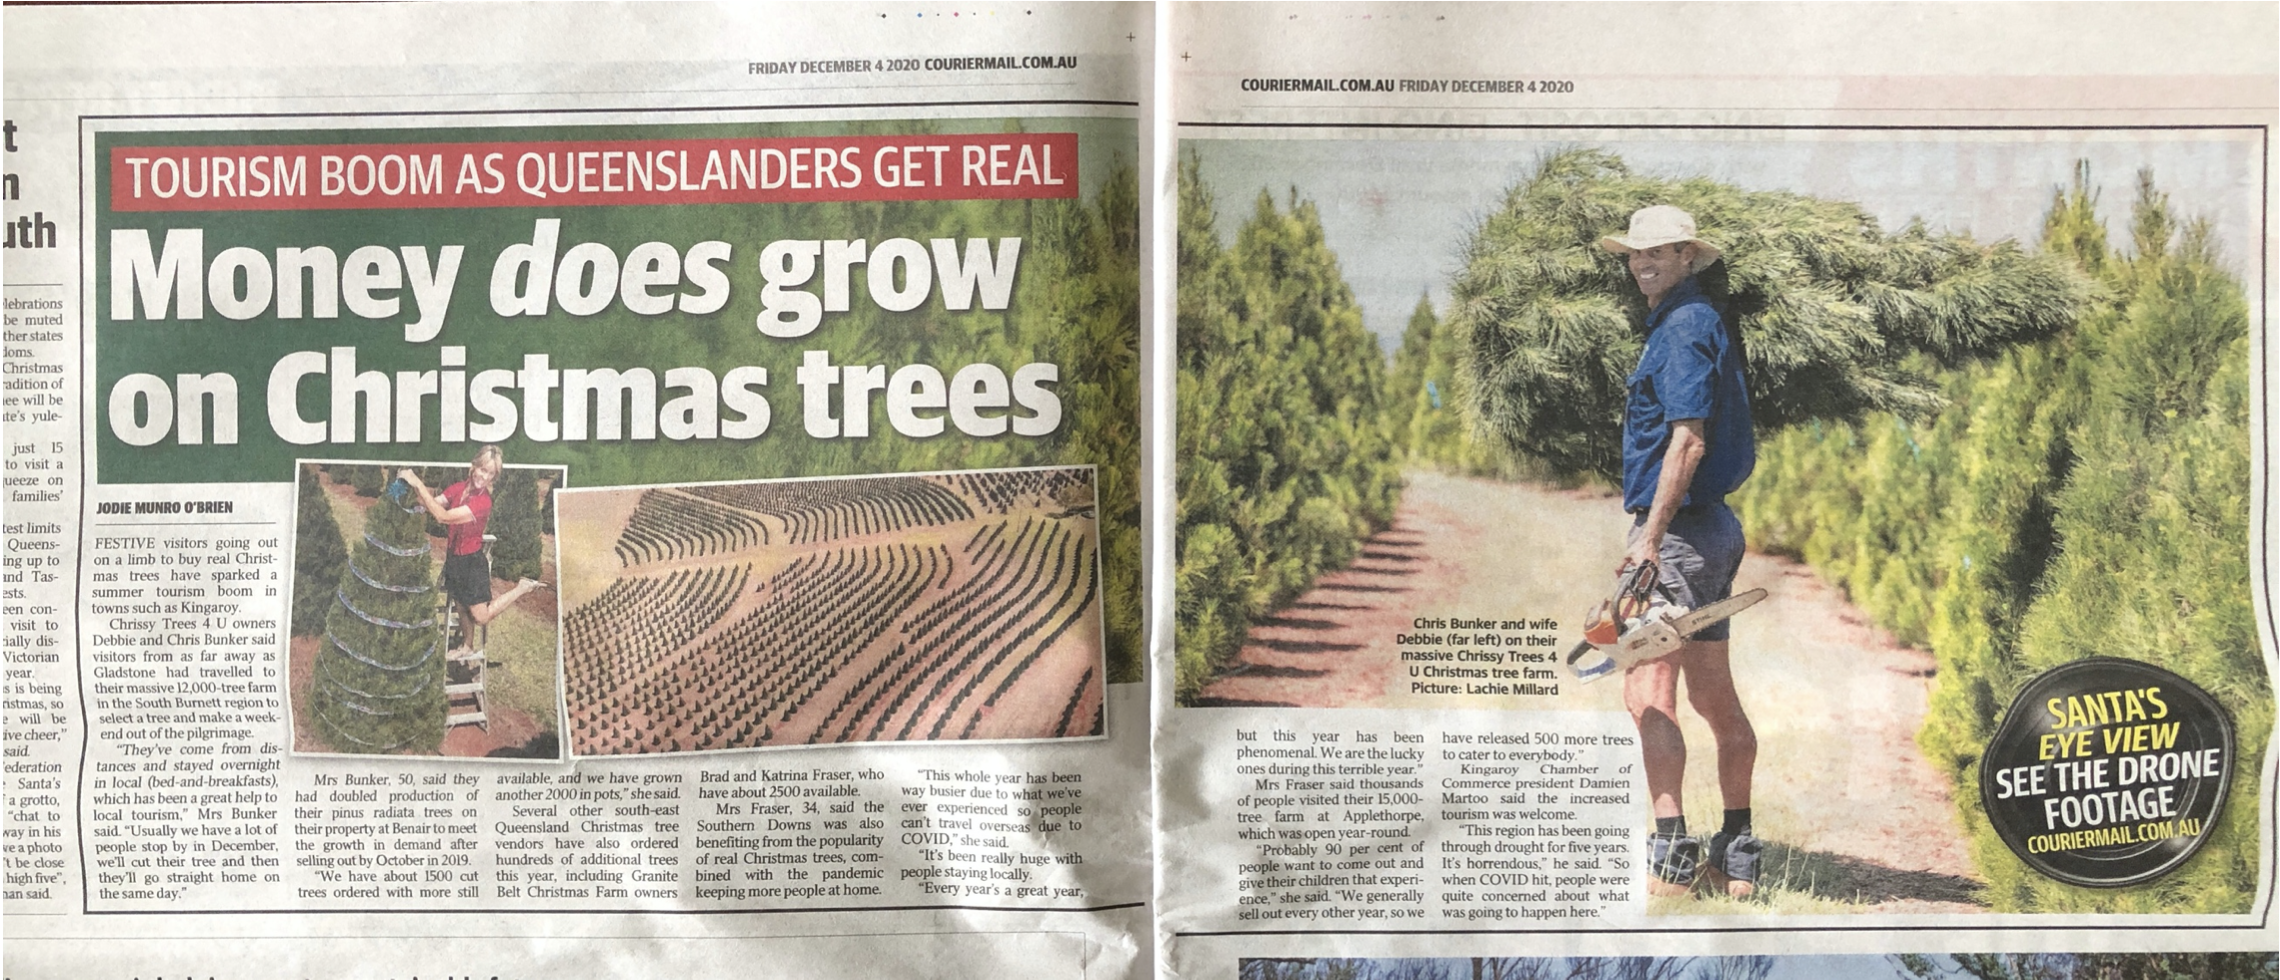 Visitors from as far as Gladstone (380km away) travel to Kingaroy to buy a real Christmas tree at Chrissy Trees 4 U farm!